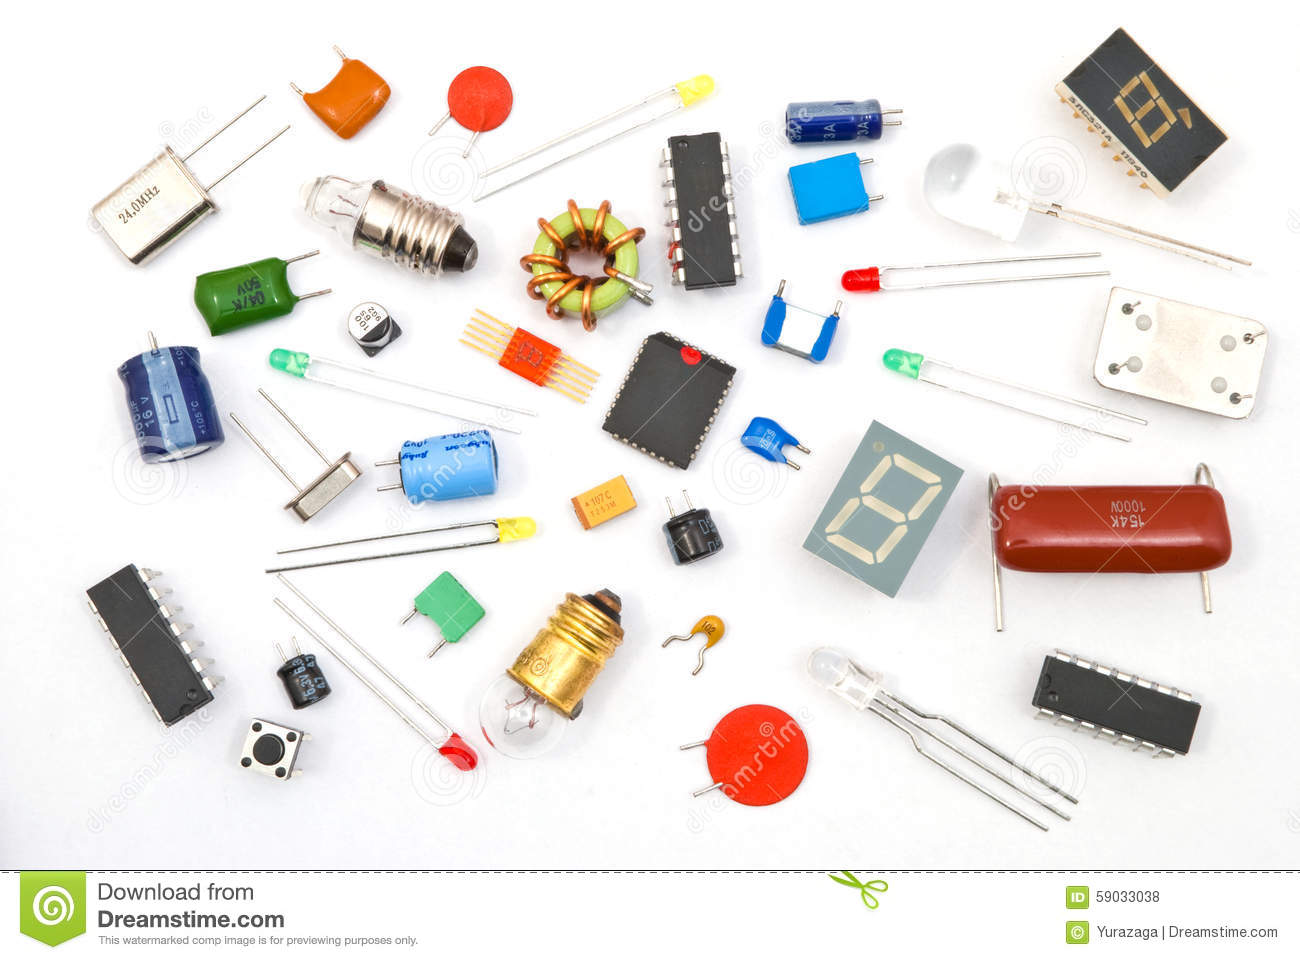 electronic components Electronic components are basic electronic element or electronic parts usually packaged in a discrete form with two or more connecting leads or metallic pads.